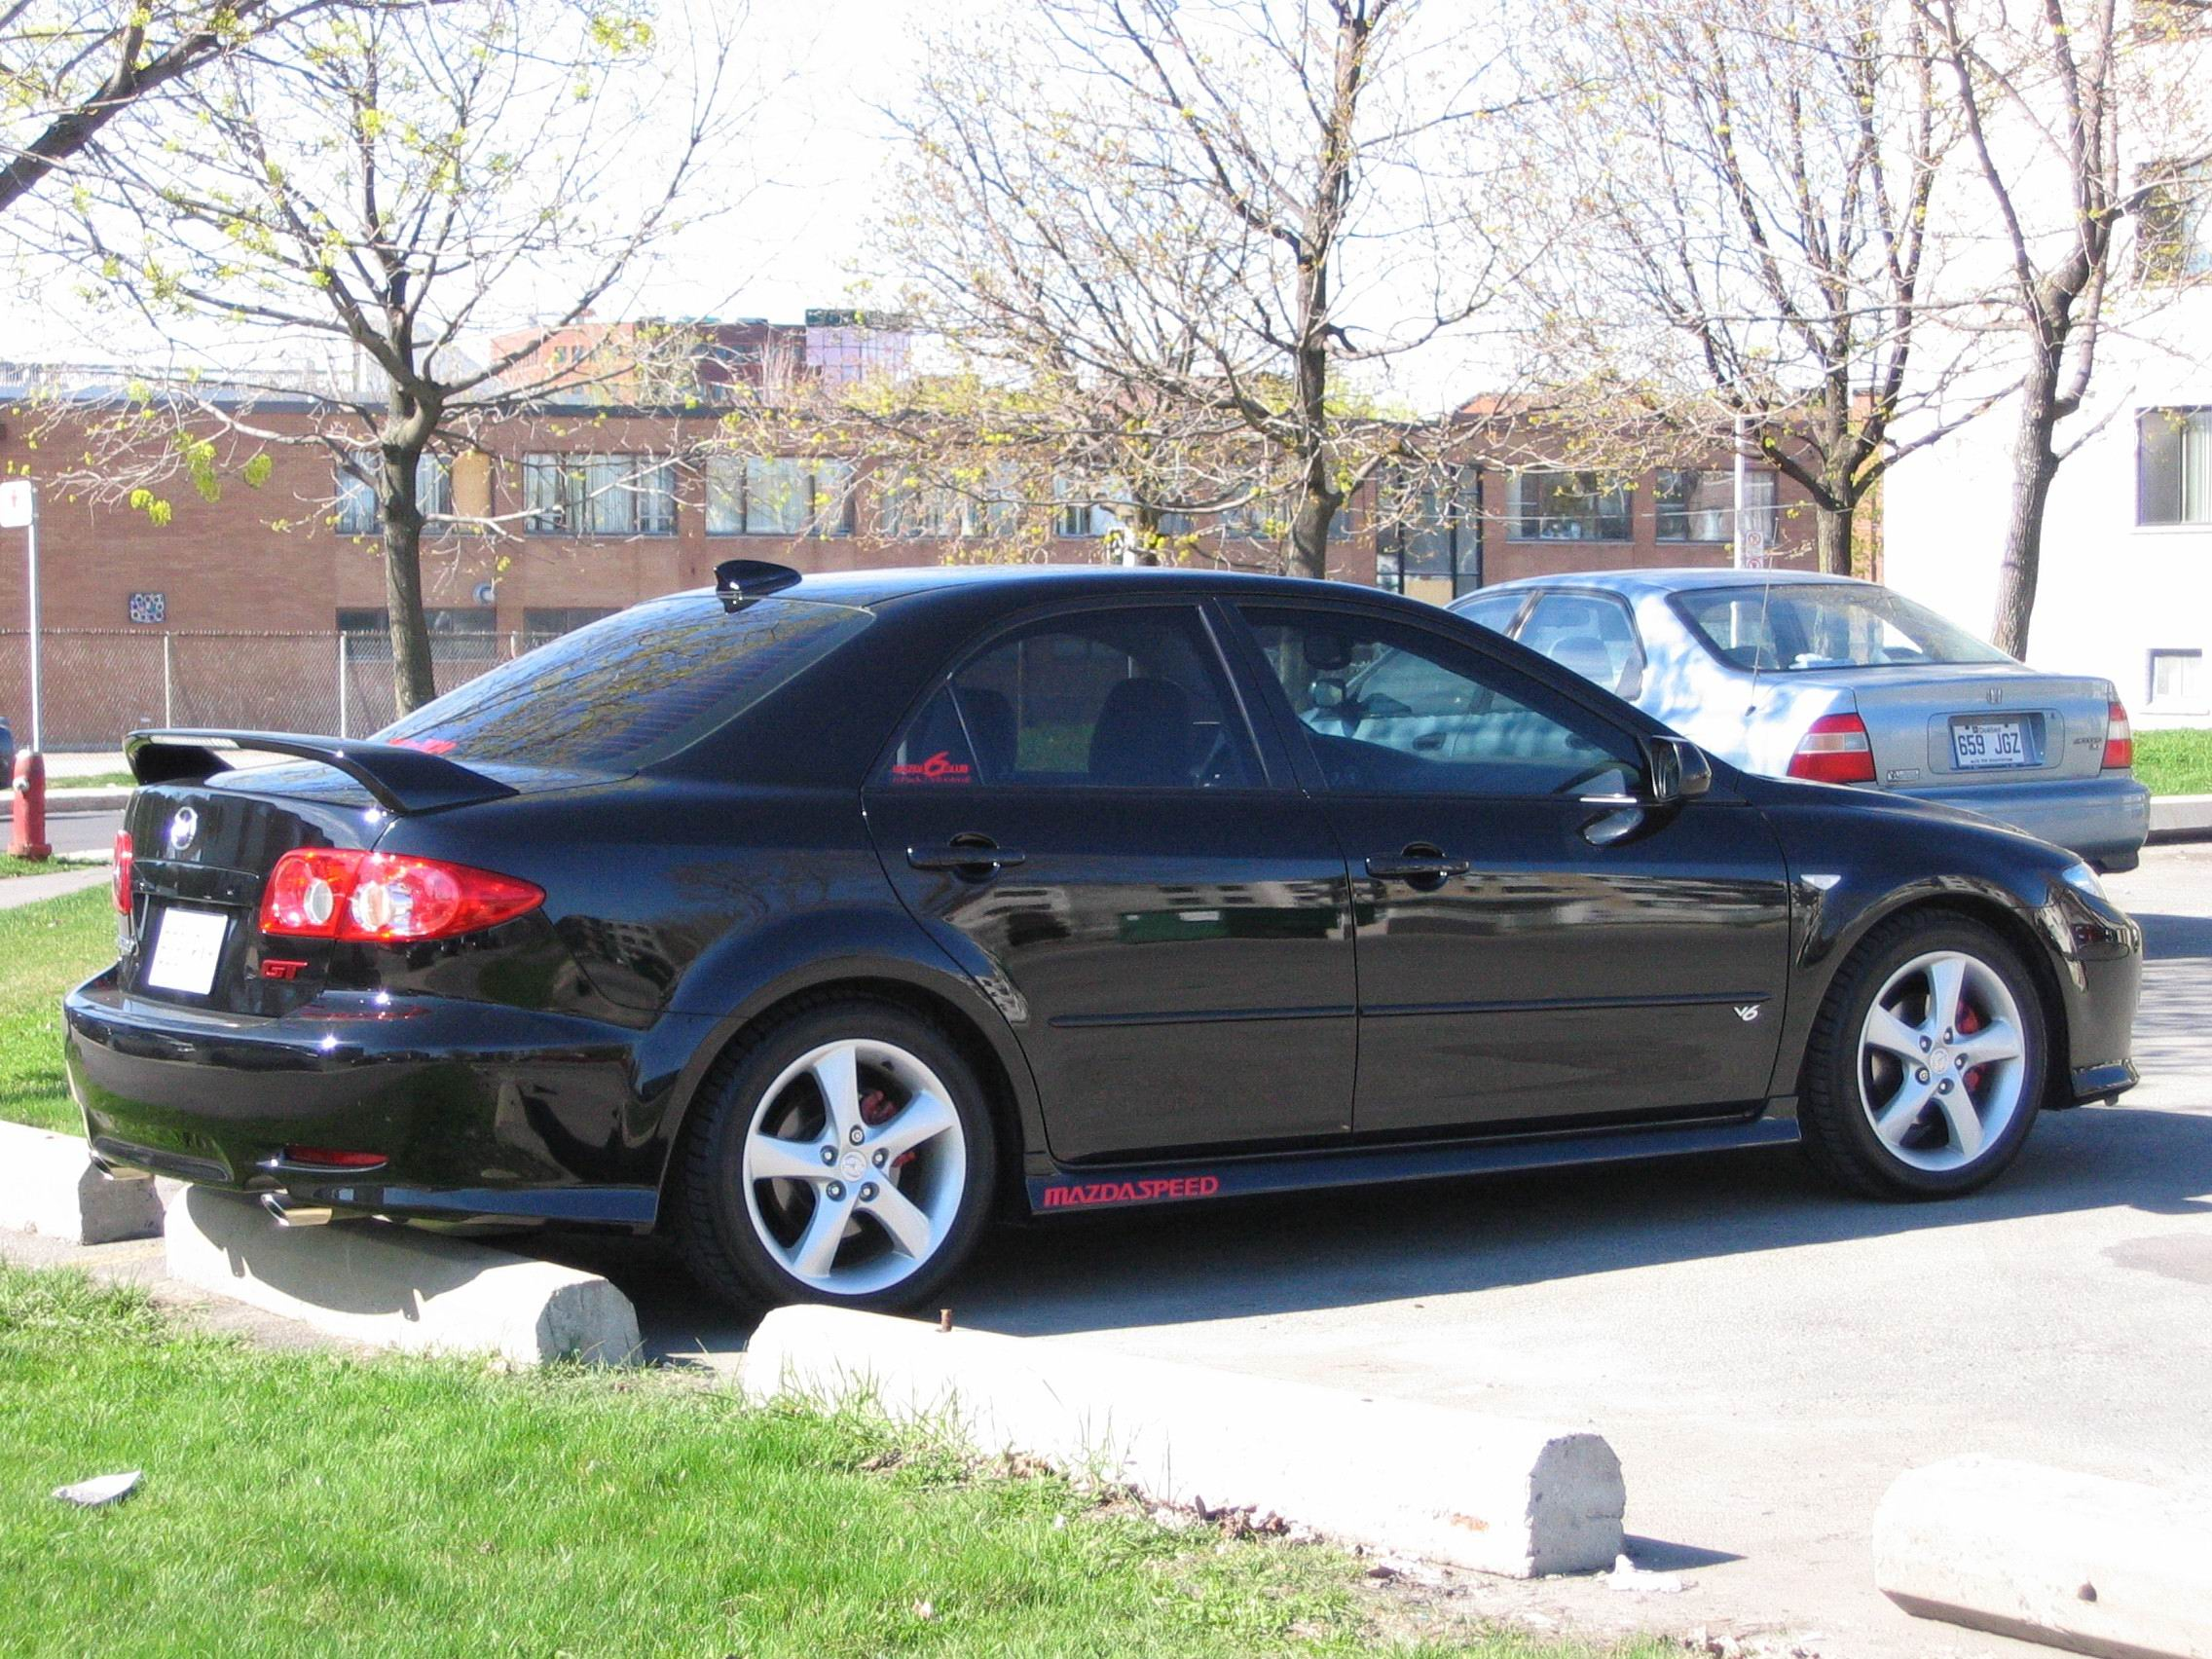 for all you 6 gt's out there ! - mazda 6 forums : mazda 6 forum